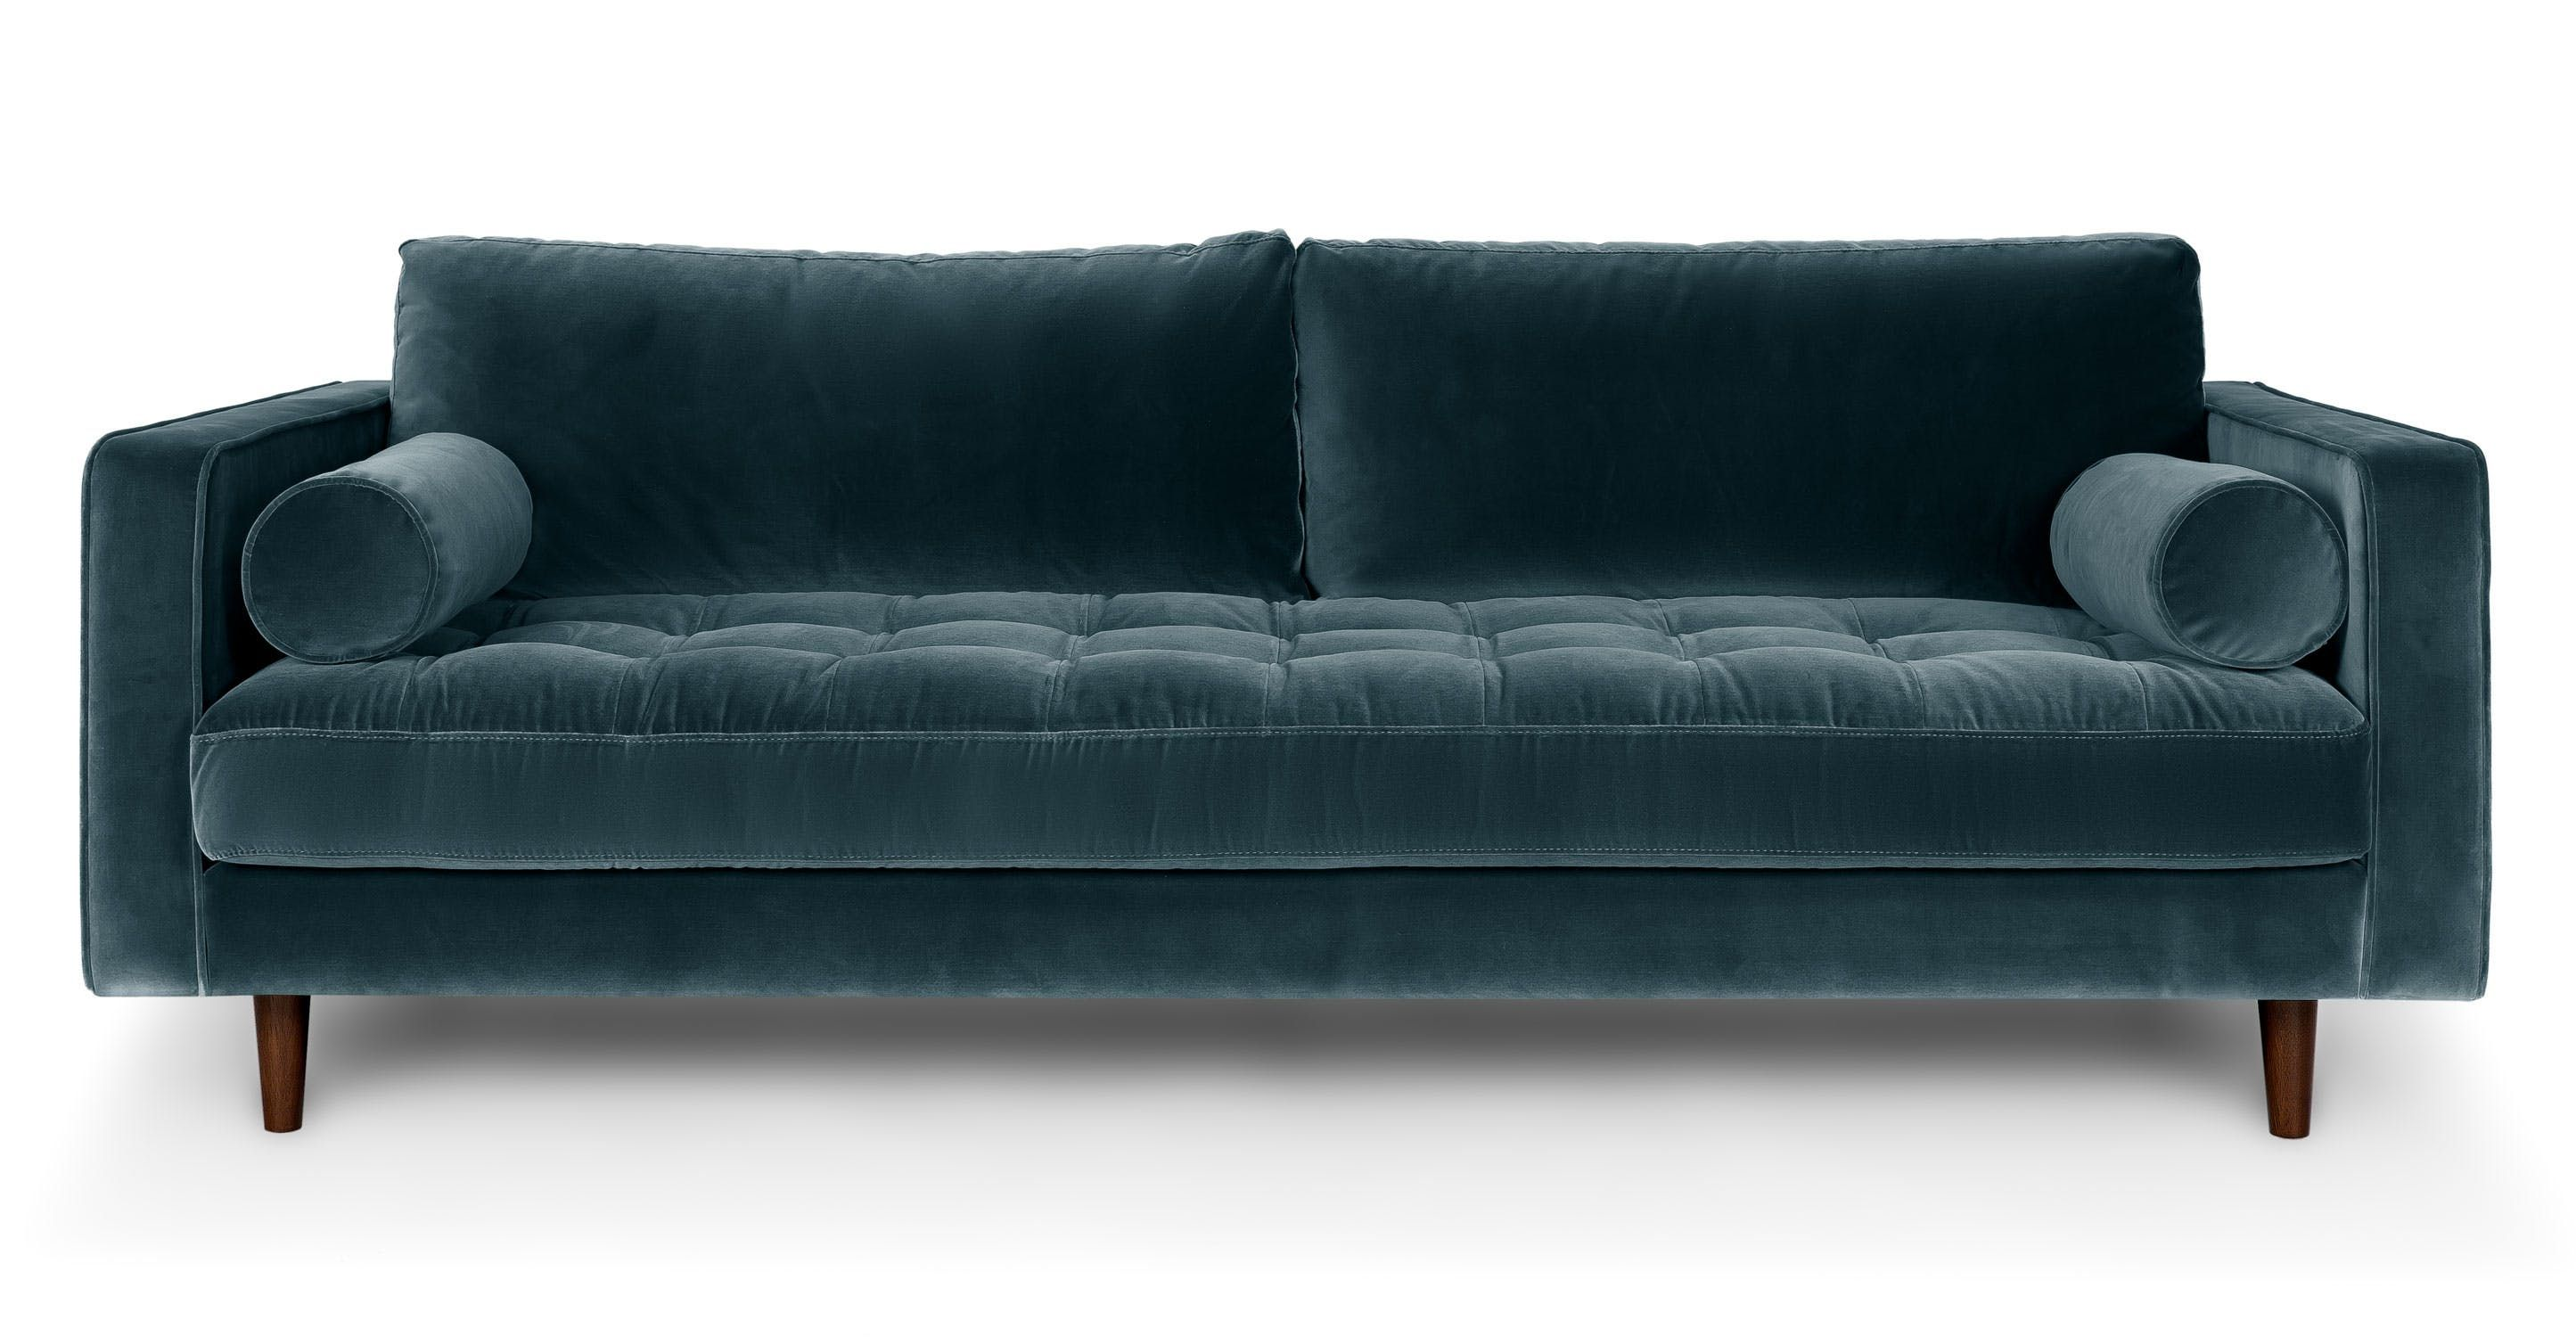 Reviewed The Most fortable Sofas at Article